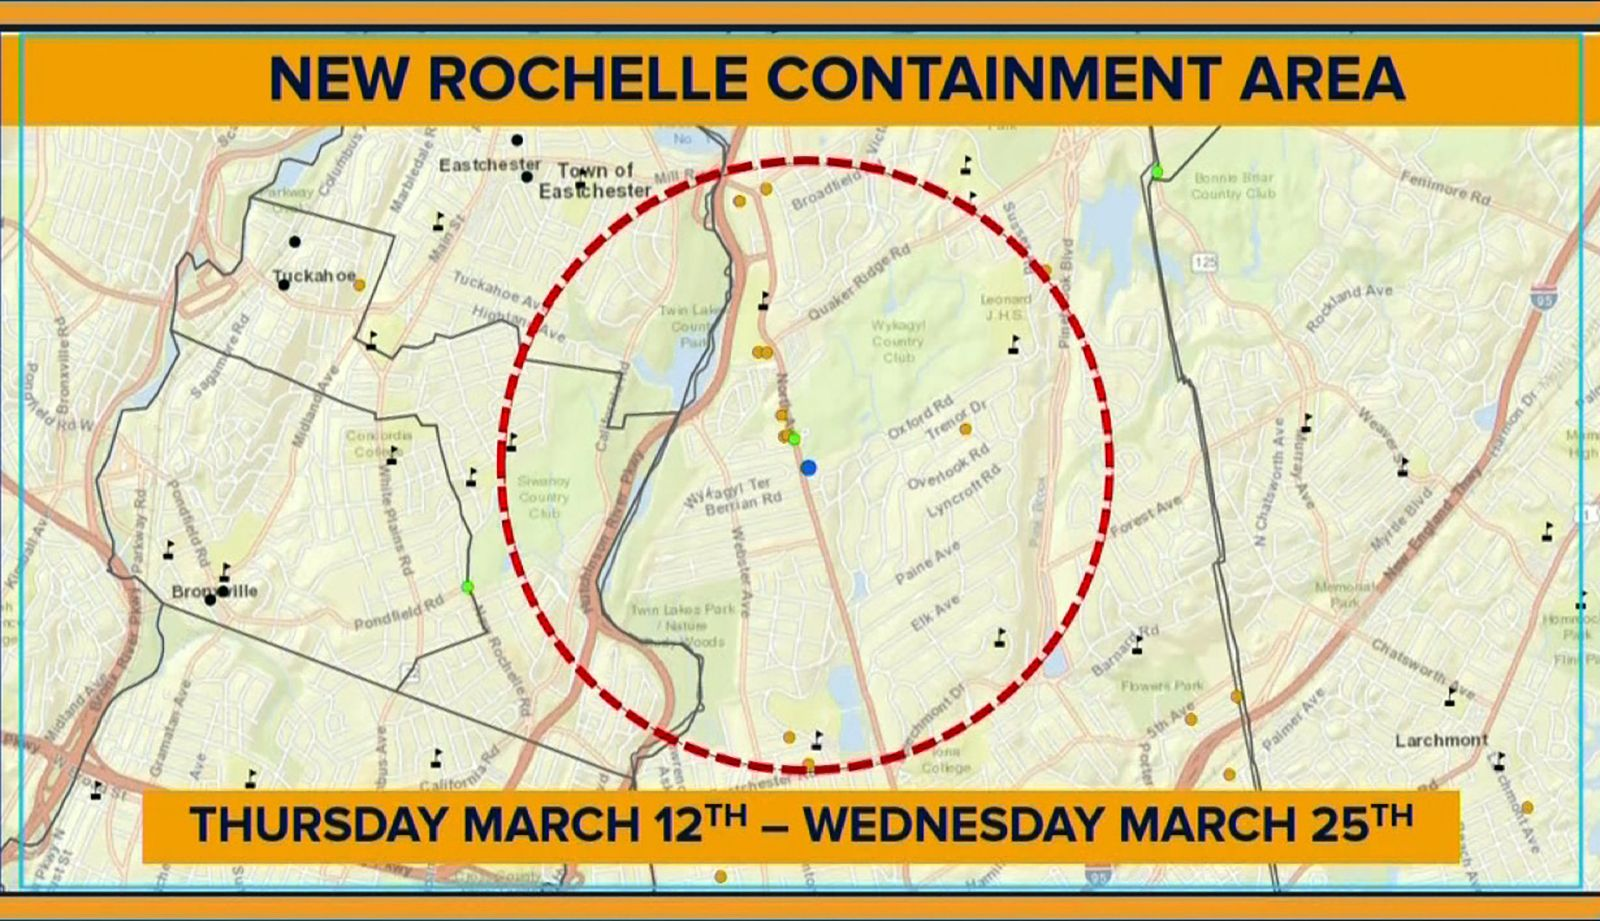 Schools And Facilities Will Close For 2 Weeks In This 1 Mile Containment Area In A New York Cit In 2020 New Rochelle School Closures New Rochelle High School